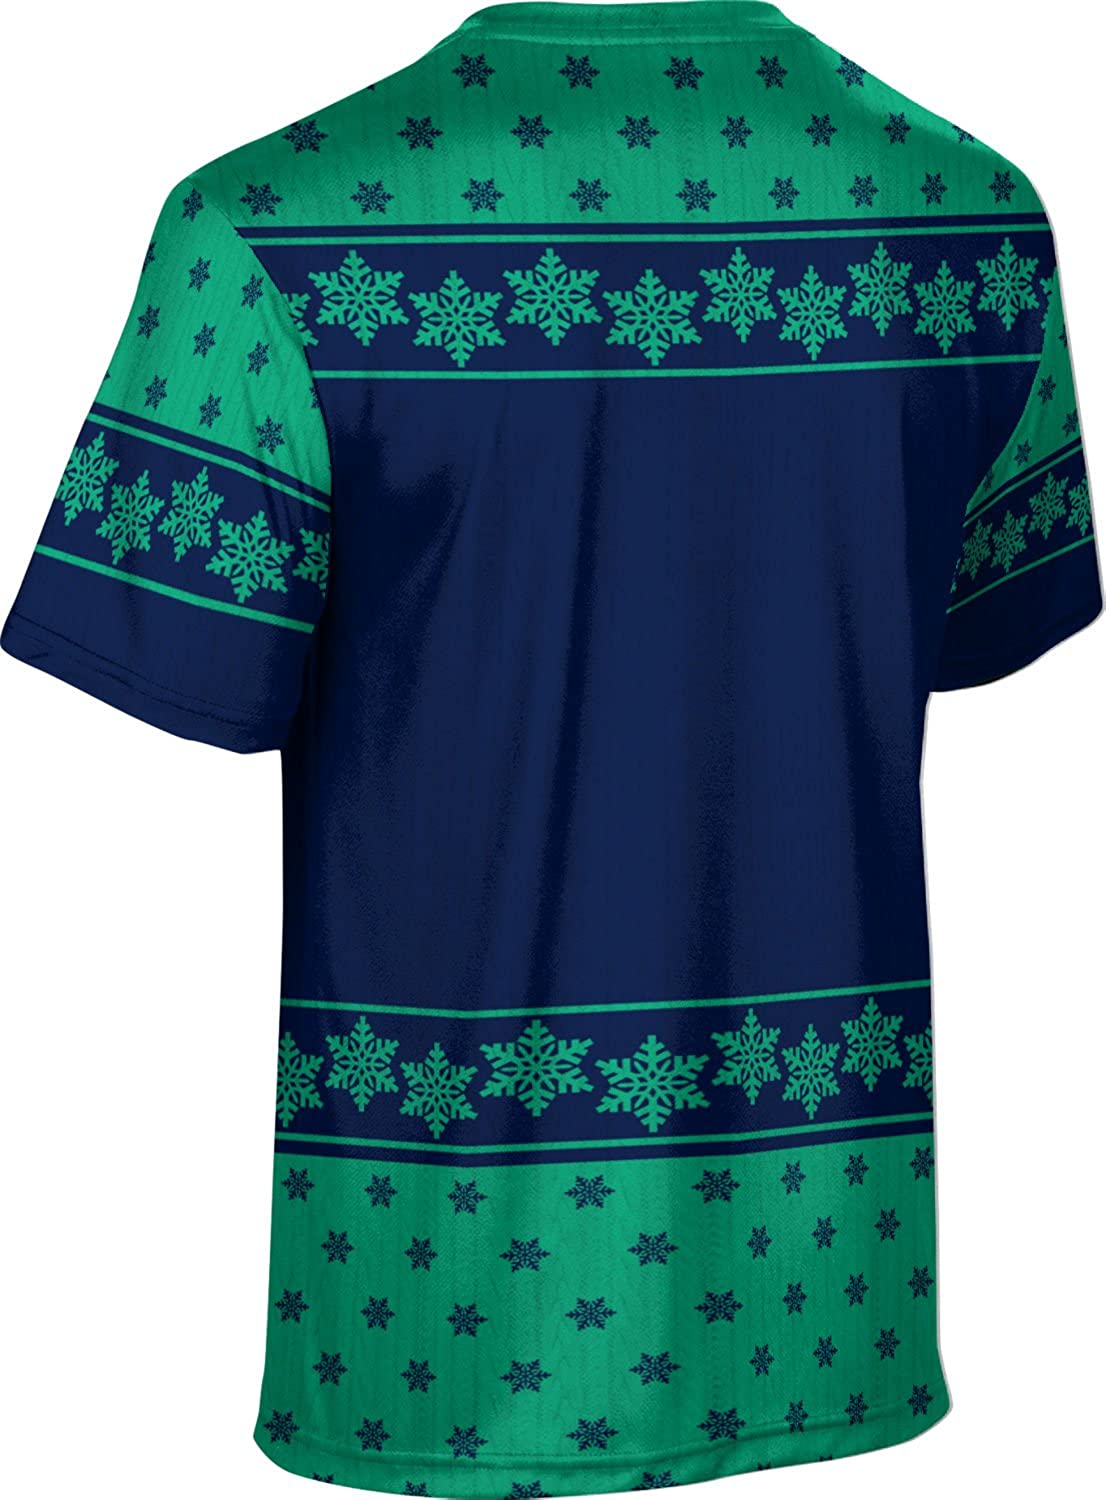 University of West Florida Ugly Holiday Mens Performance T-Shirt Snowflake